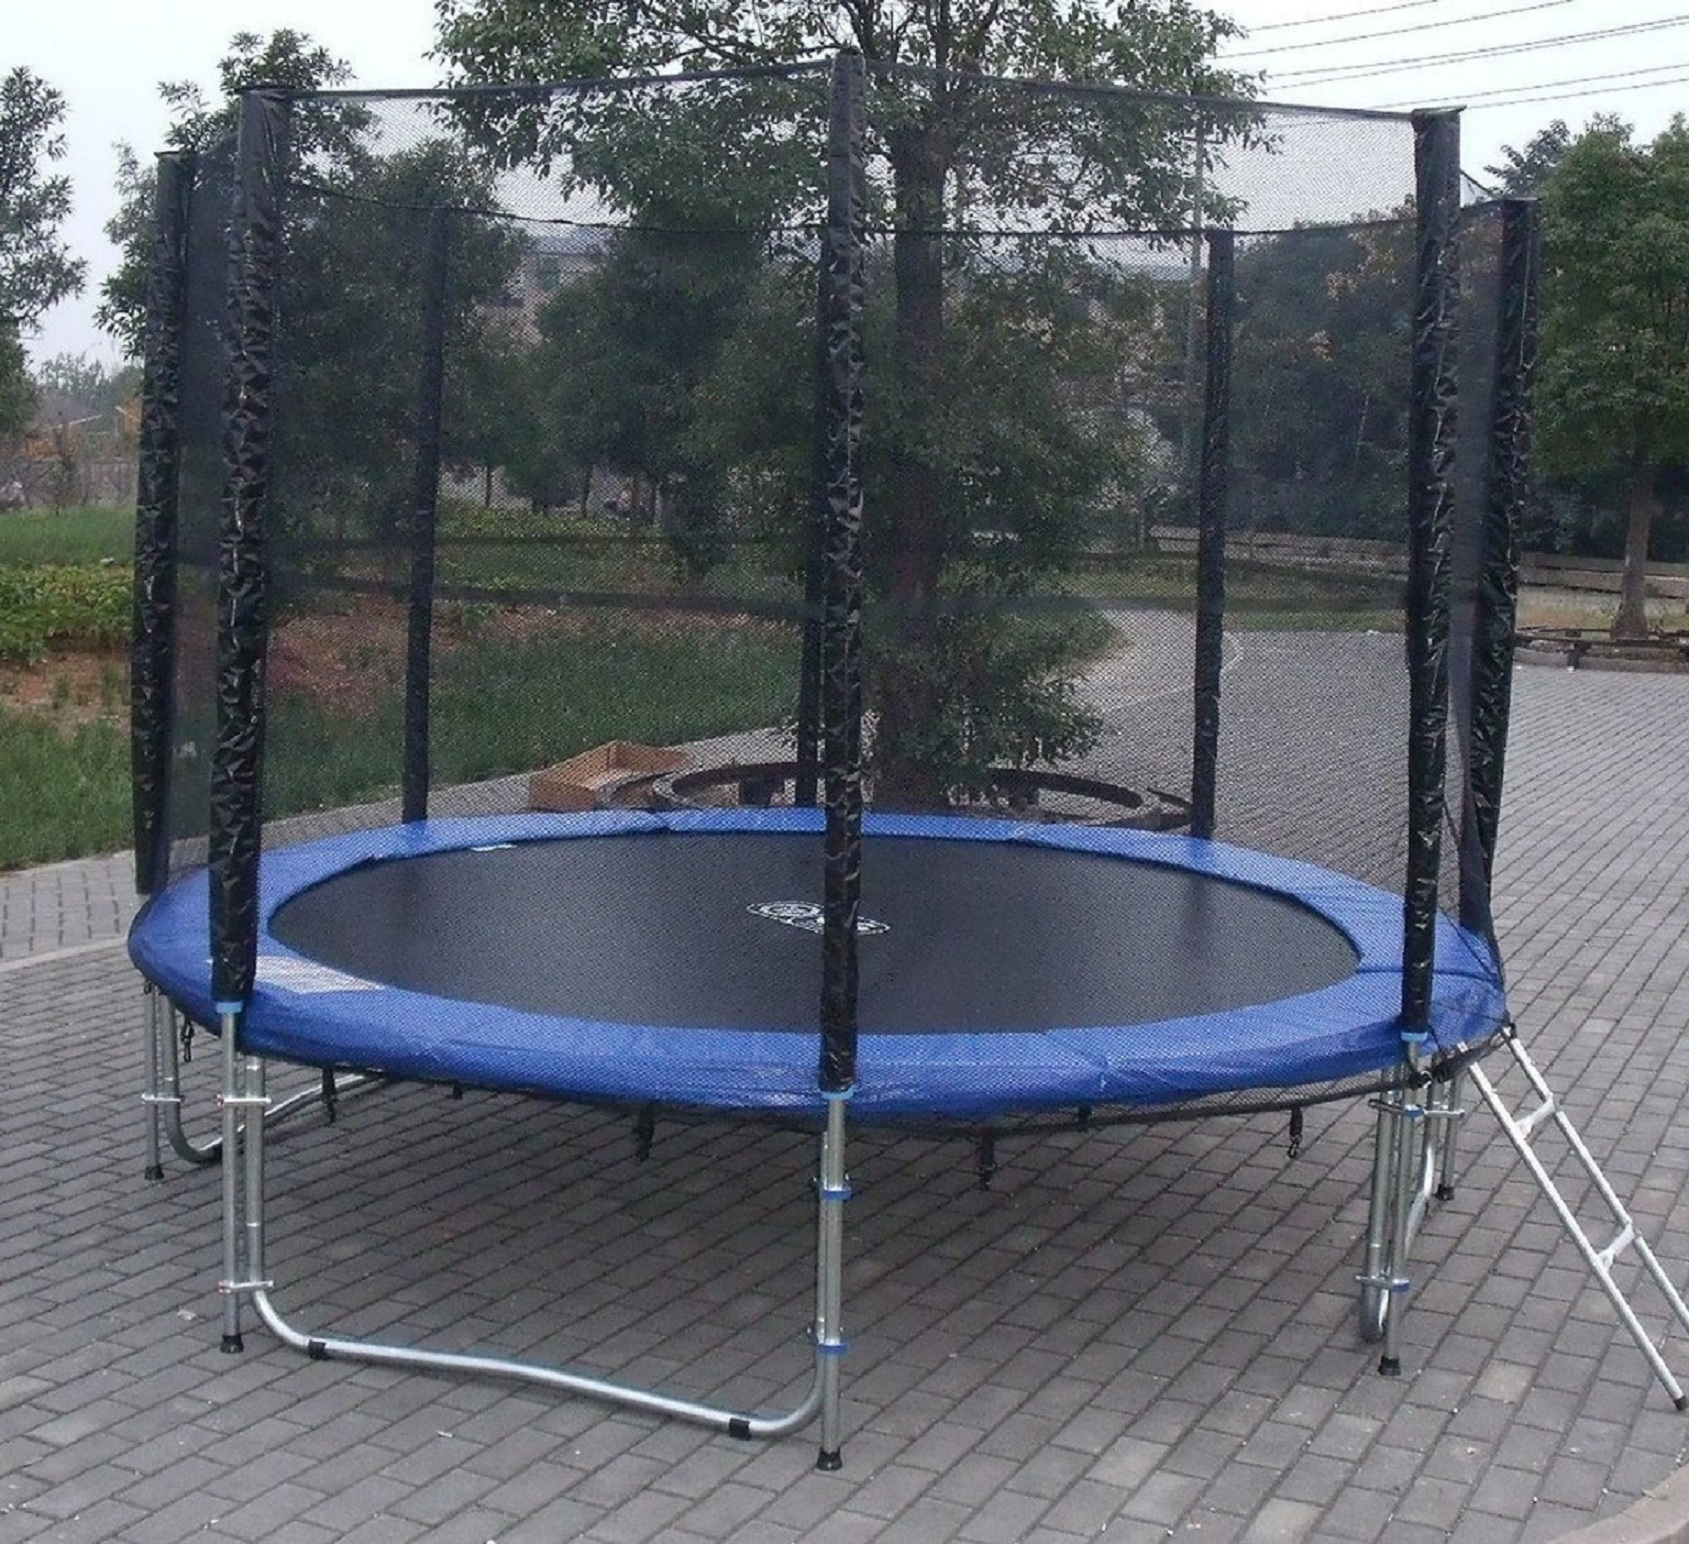 EXACME 10 FT Trampoline W/ Safety Pad & Enclosure Net ALL